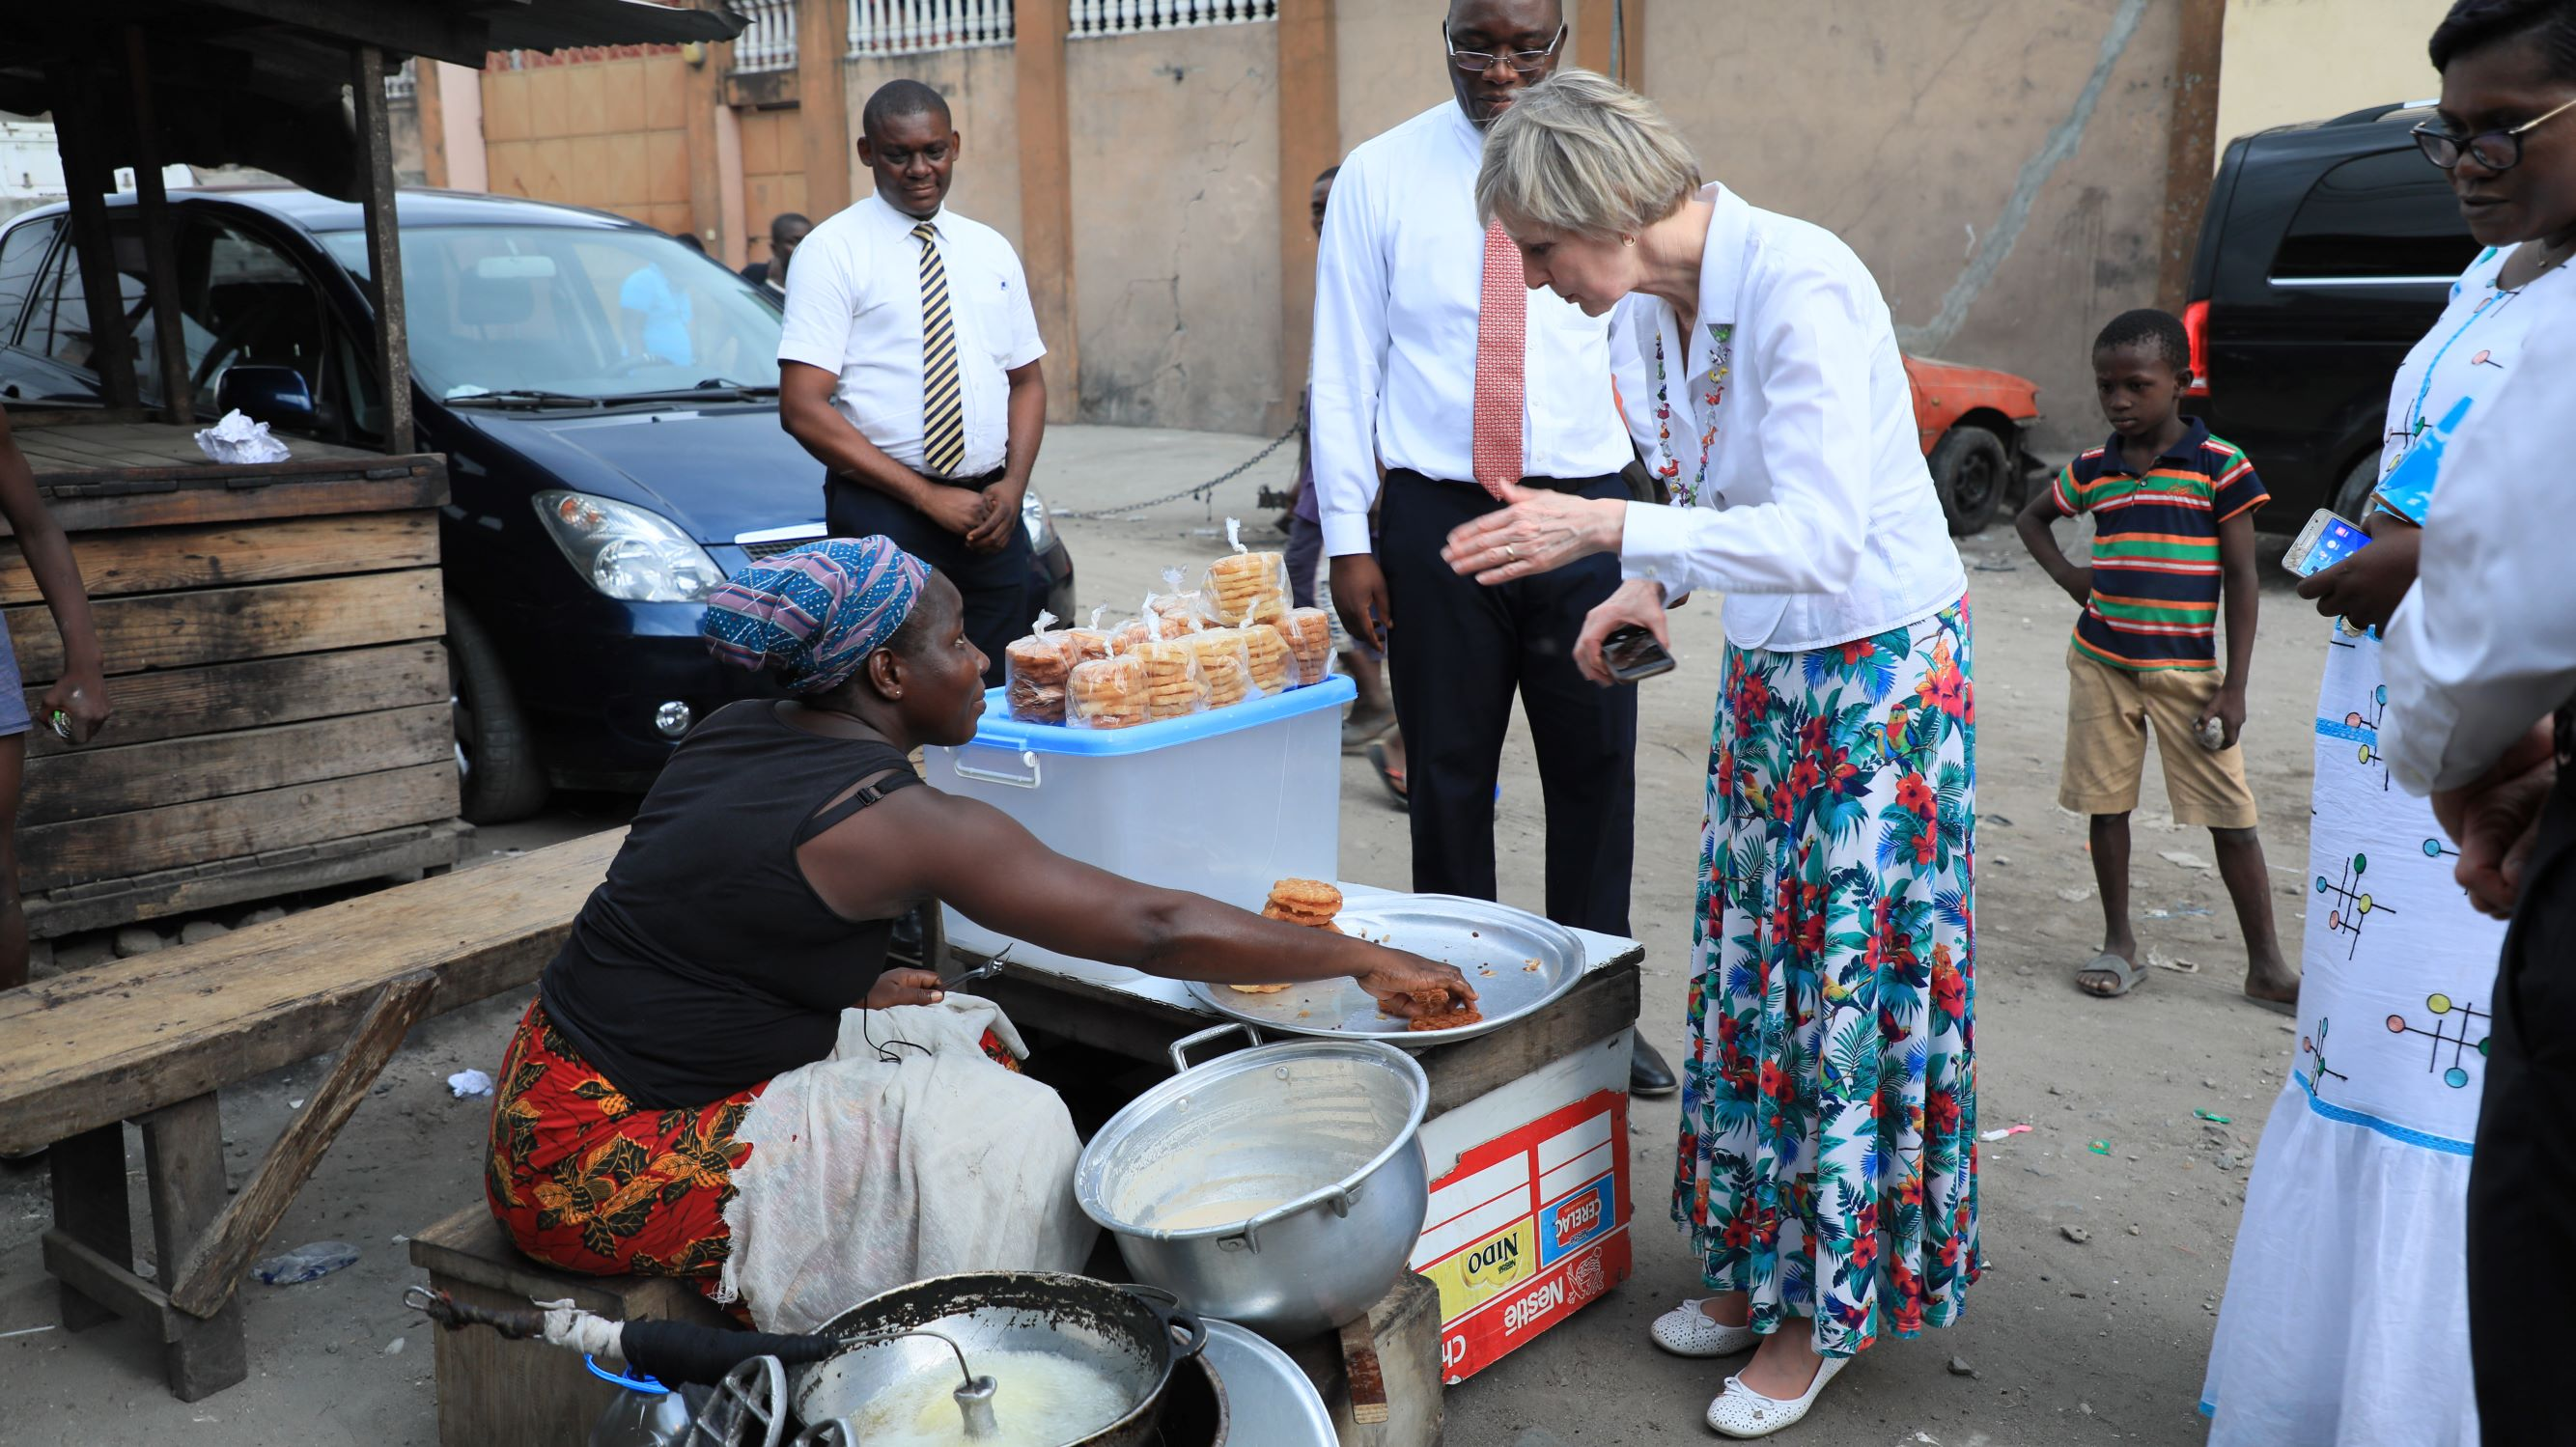 Sister Jean B. Bingham, Relief Society general president, takes a cooking lesson from a woman on the street in Abidjan, Côte d'Ivoire, Friday, March 8, 2019.